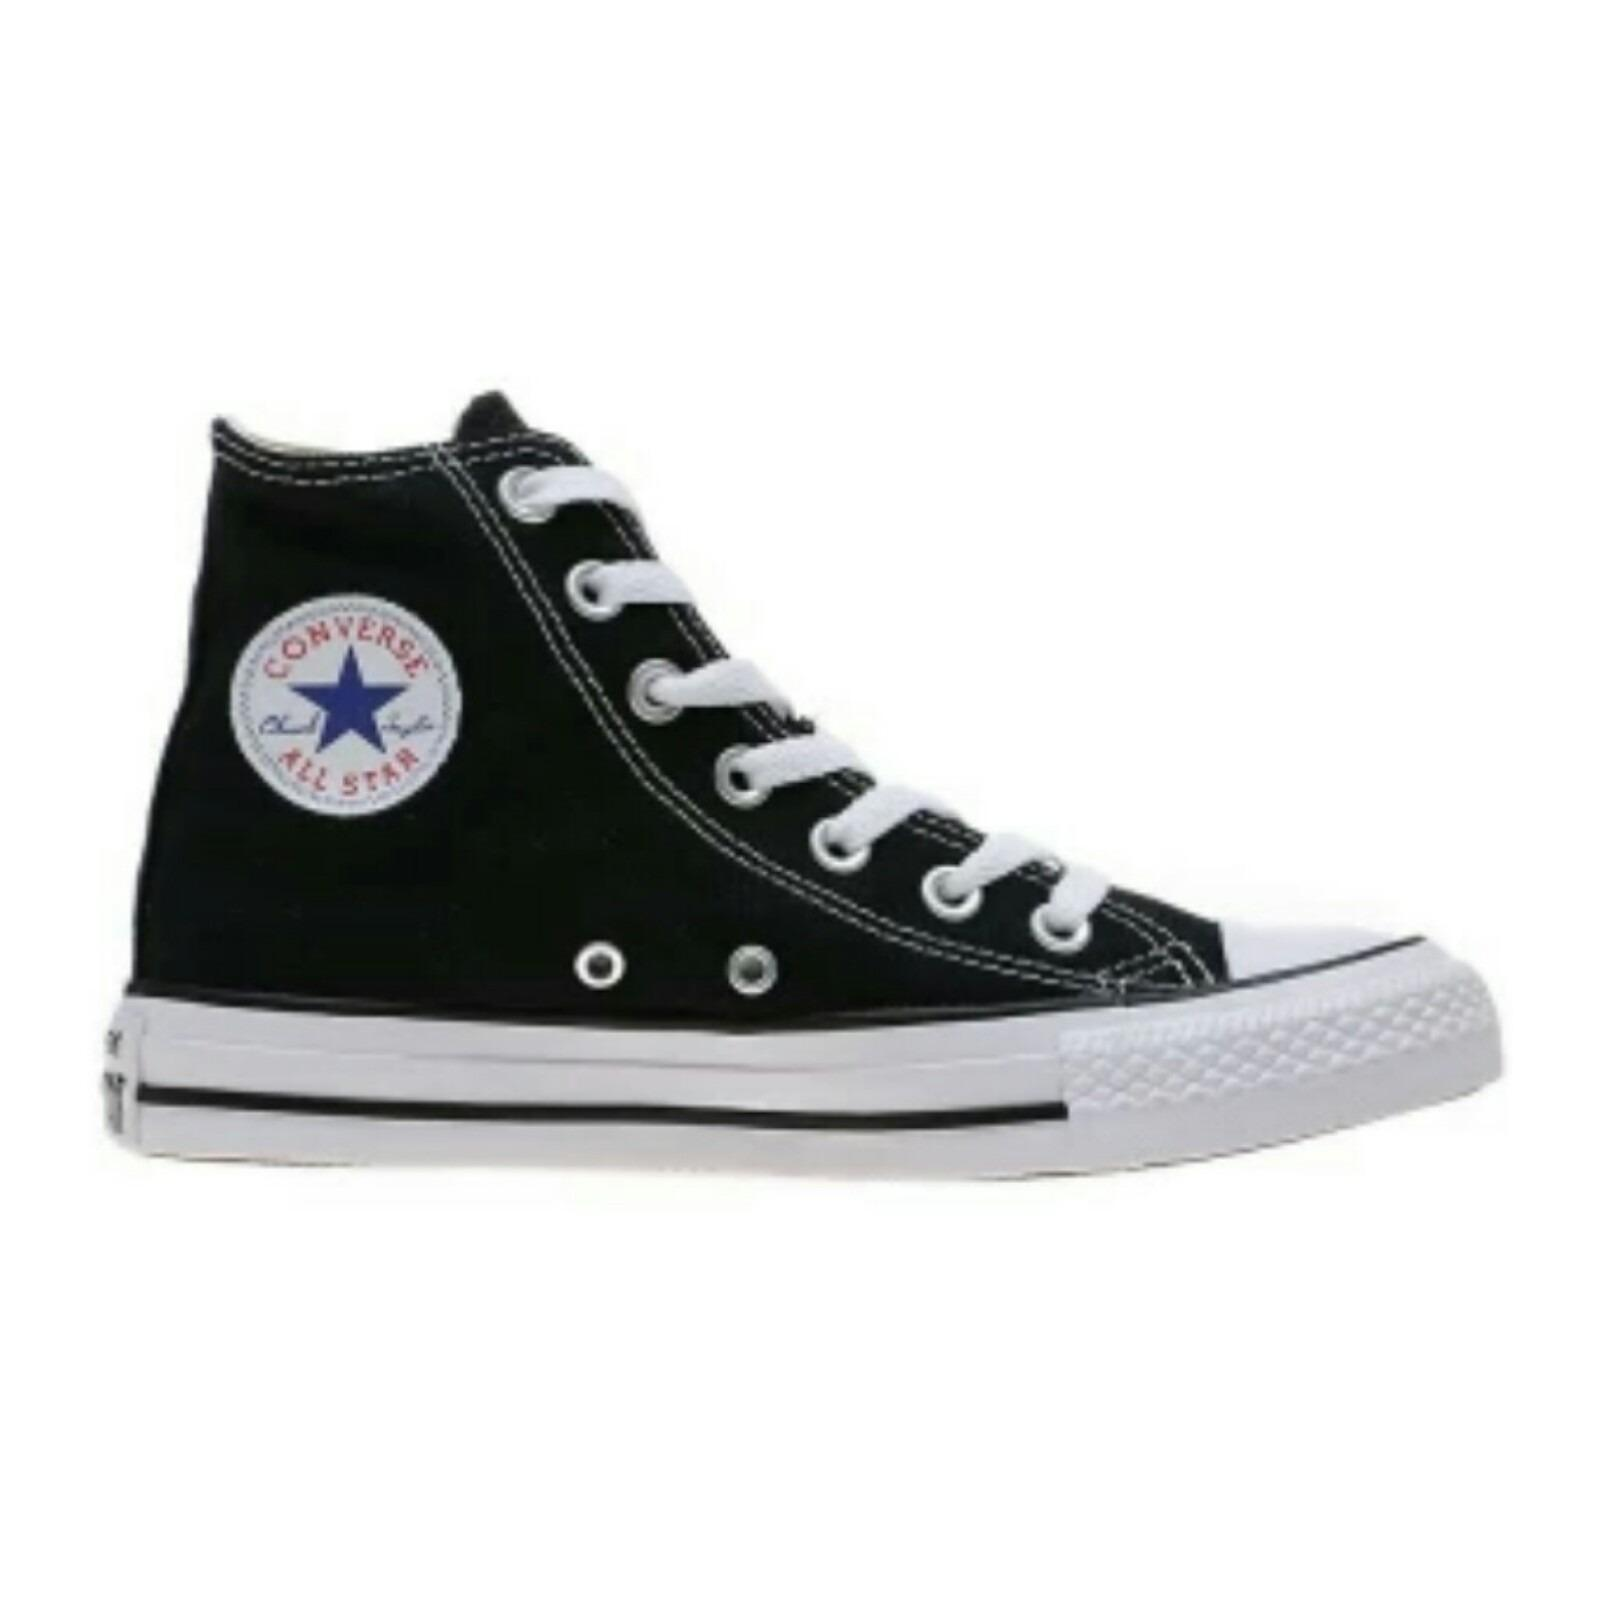 Sneakers Converse All Star Ox Classic Canvas High - Black